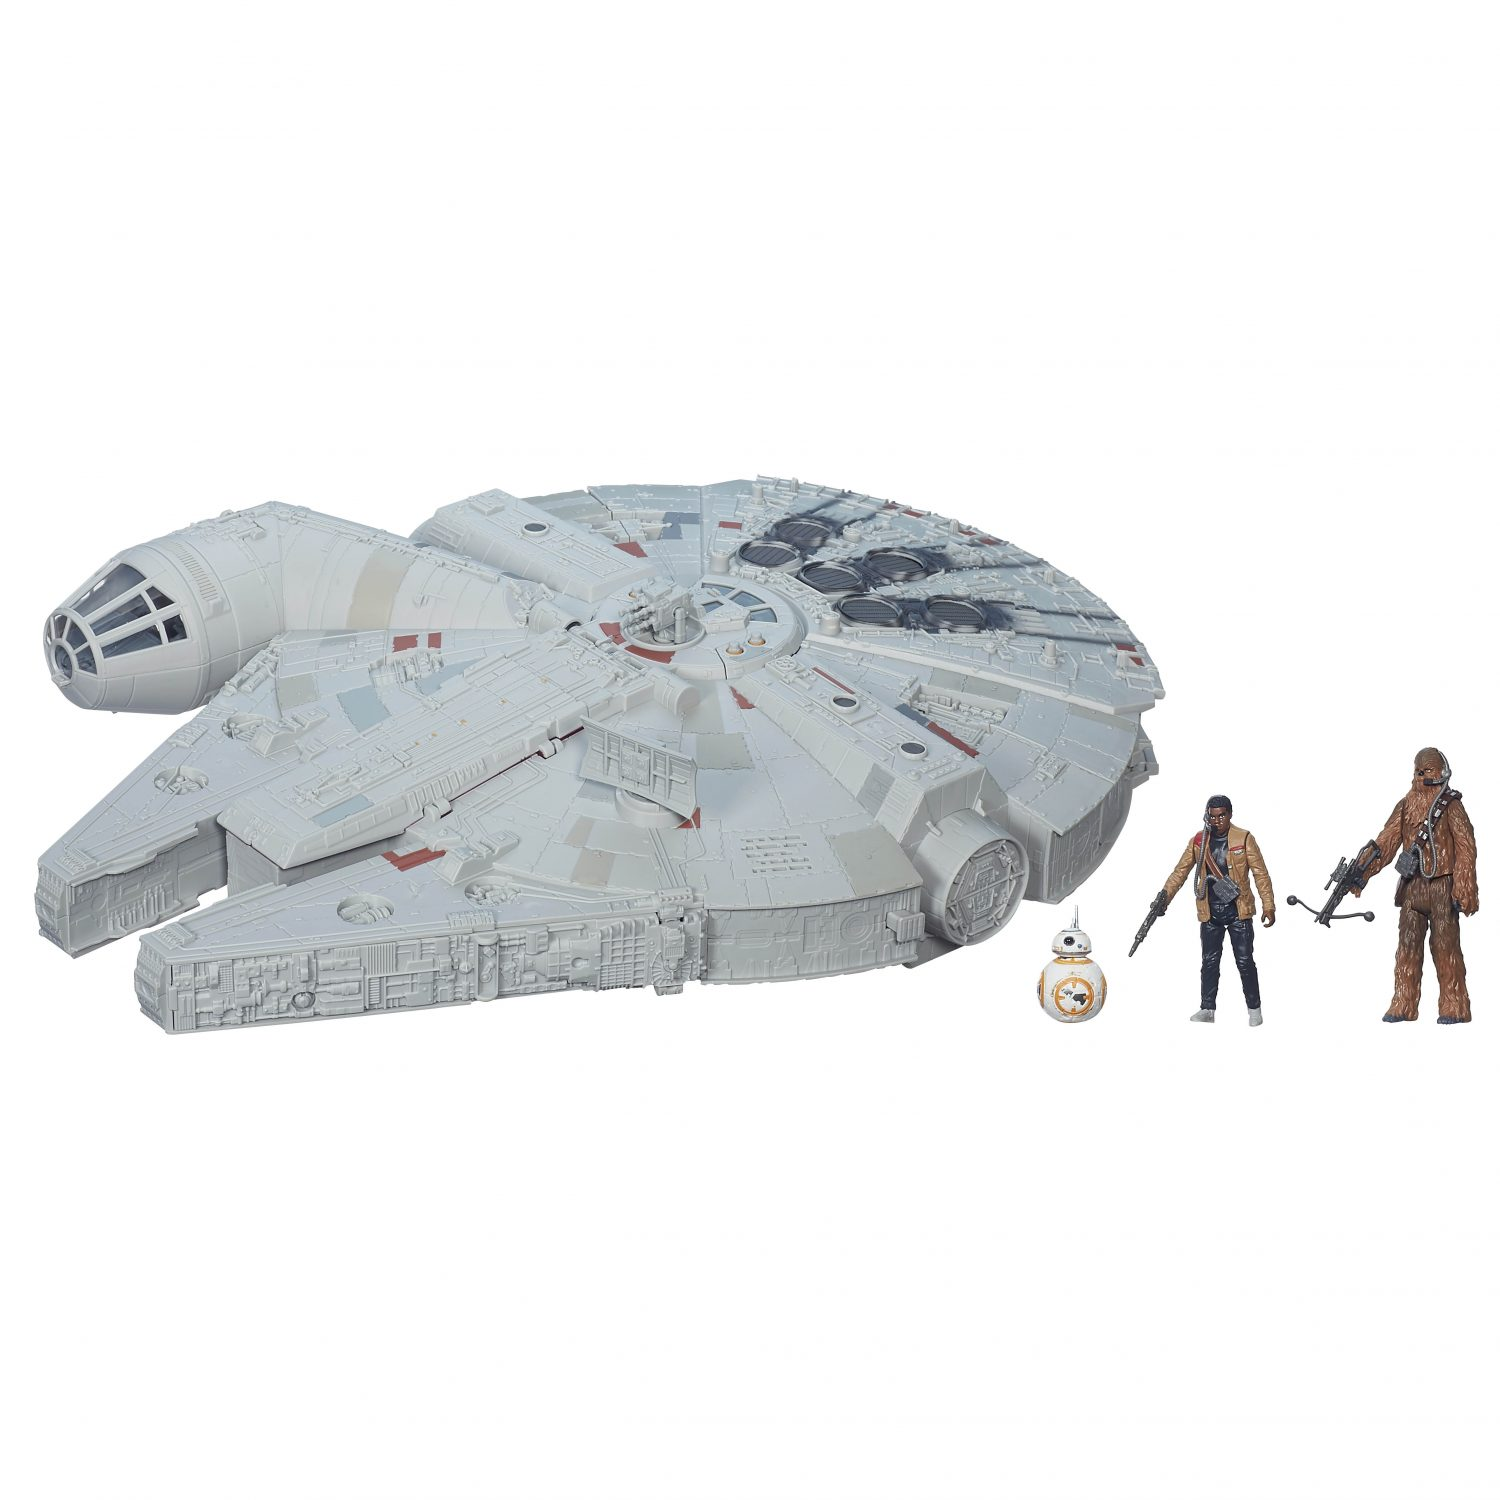 Hasbro Star Wars: The Force Awakens Millennium Falcon Vehicle Now 43% Off